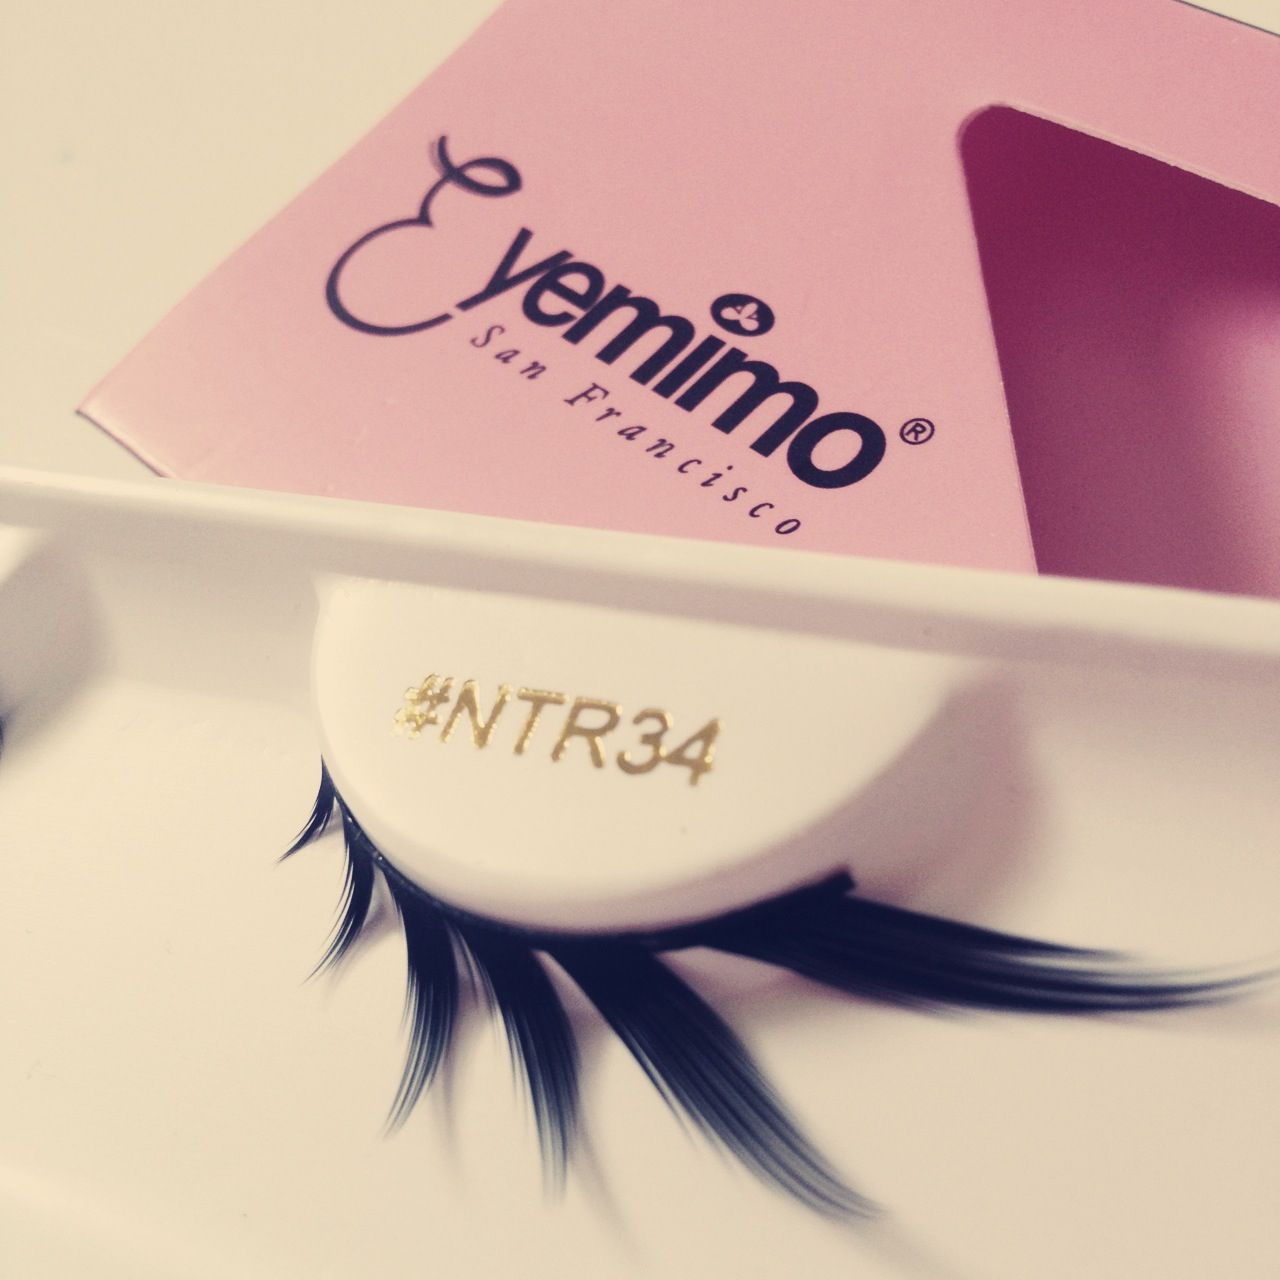 What #makeup theme will you be wearing this #falseeyelashes style #NTR34?  Available at www.eyemimo.com